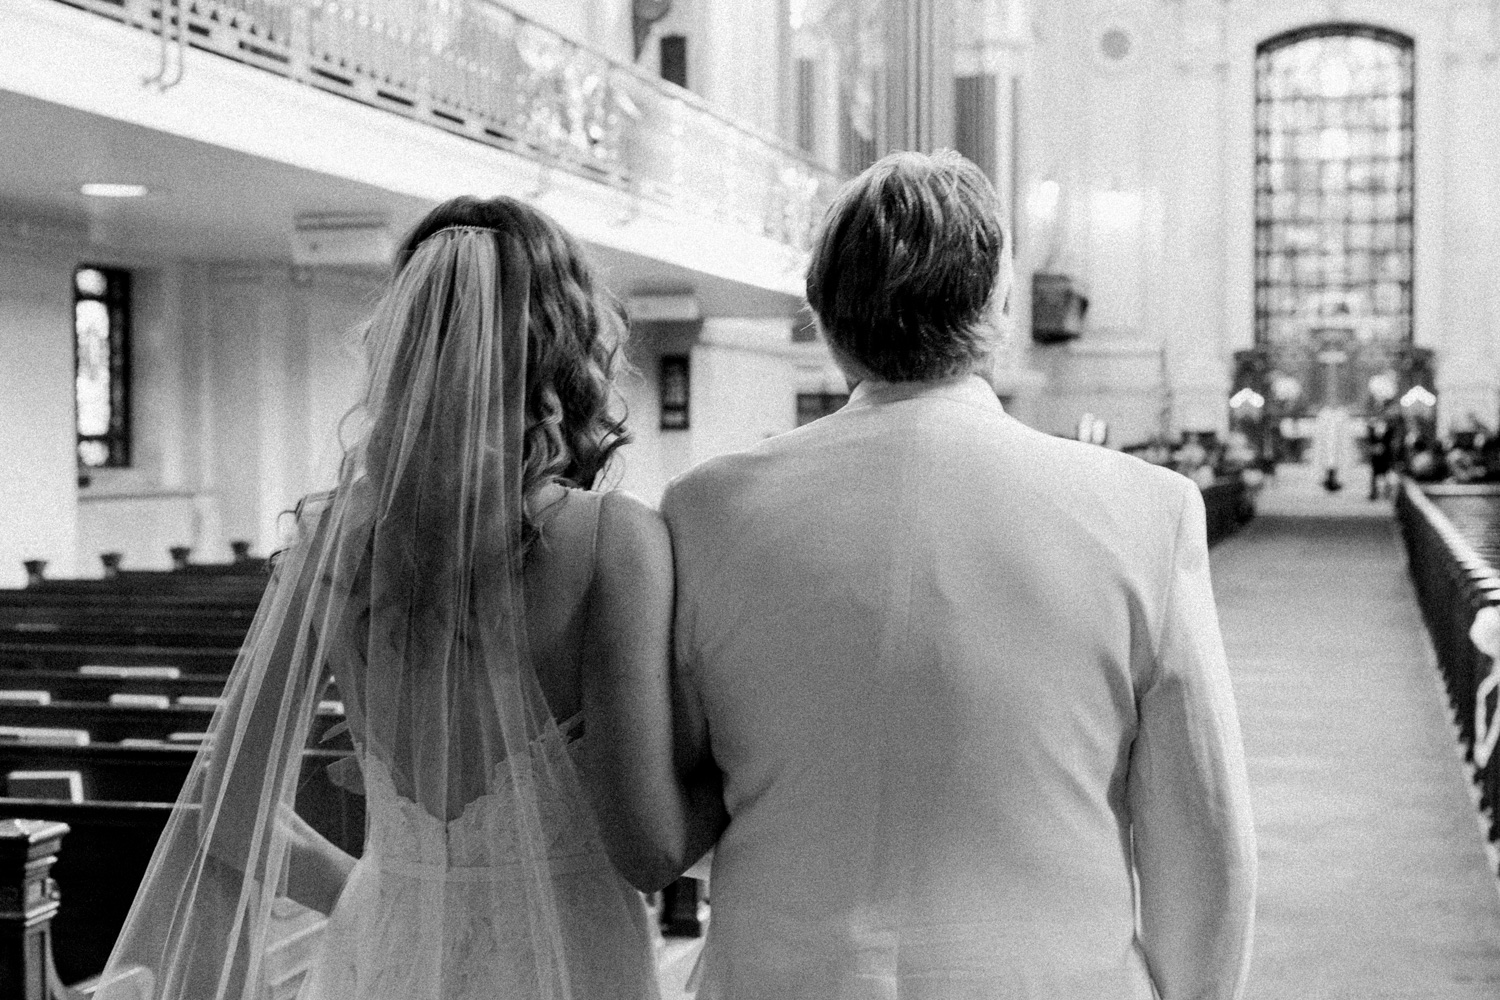 image of bride and father entrance wedding ceremony at US Naval Academy chapel in black and white